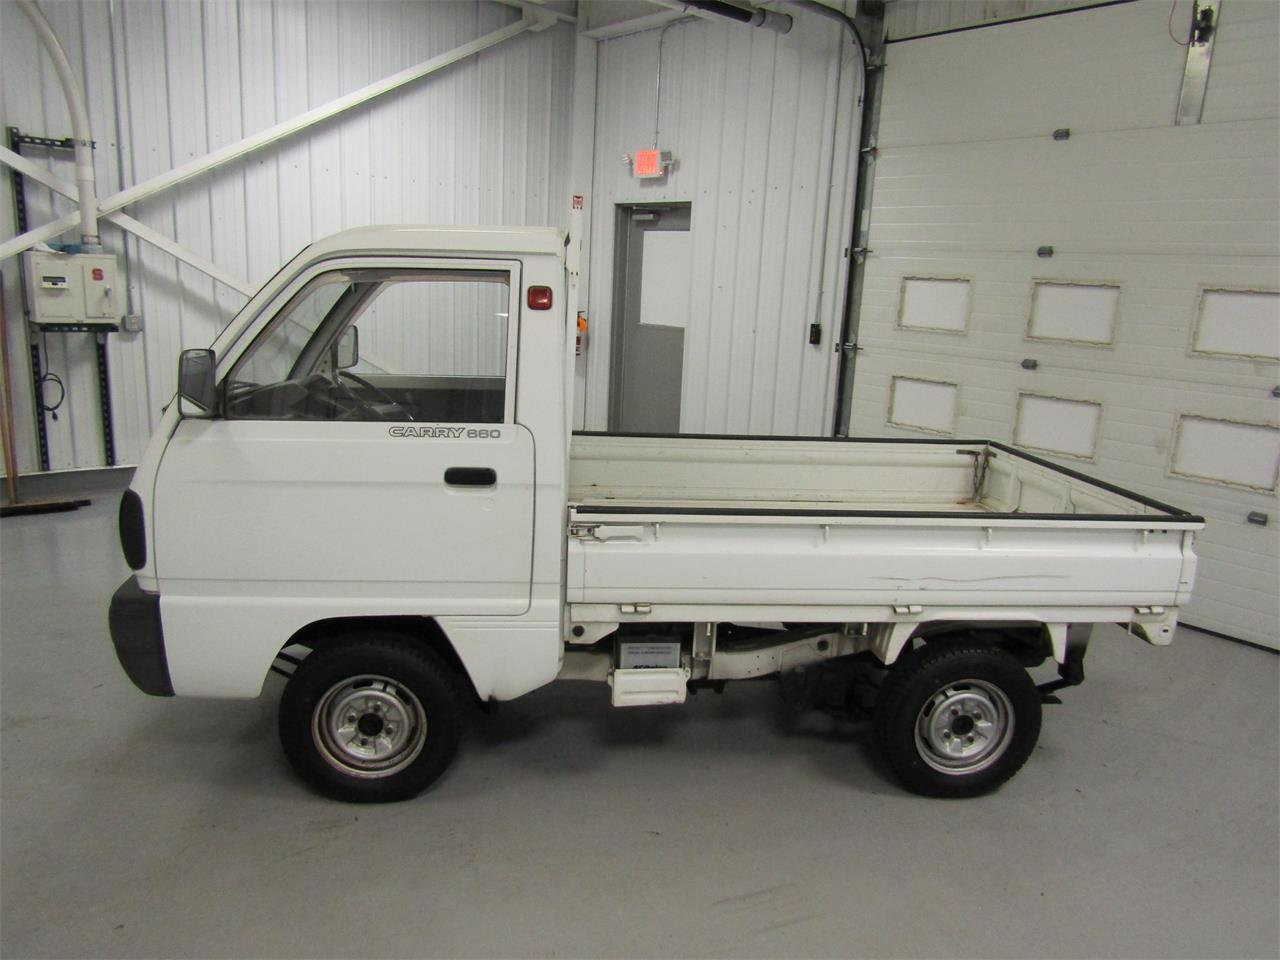 1991 Suzuki Carry for sale in Christiansburg, VA – photo 7